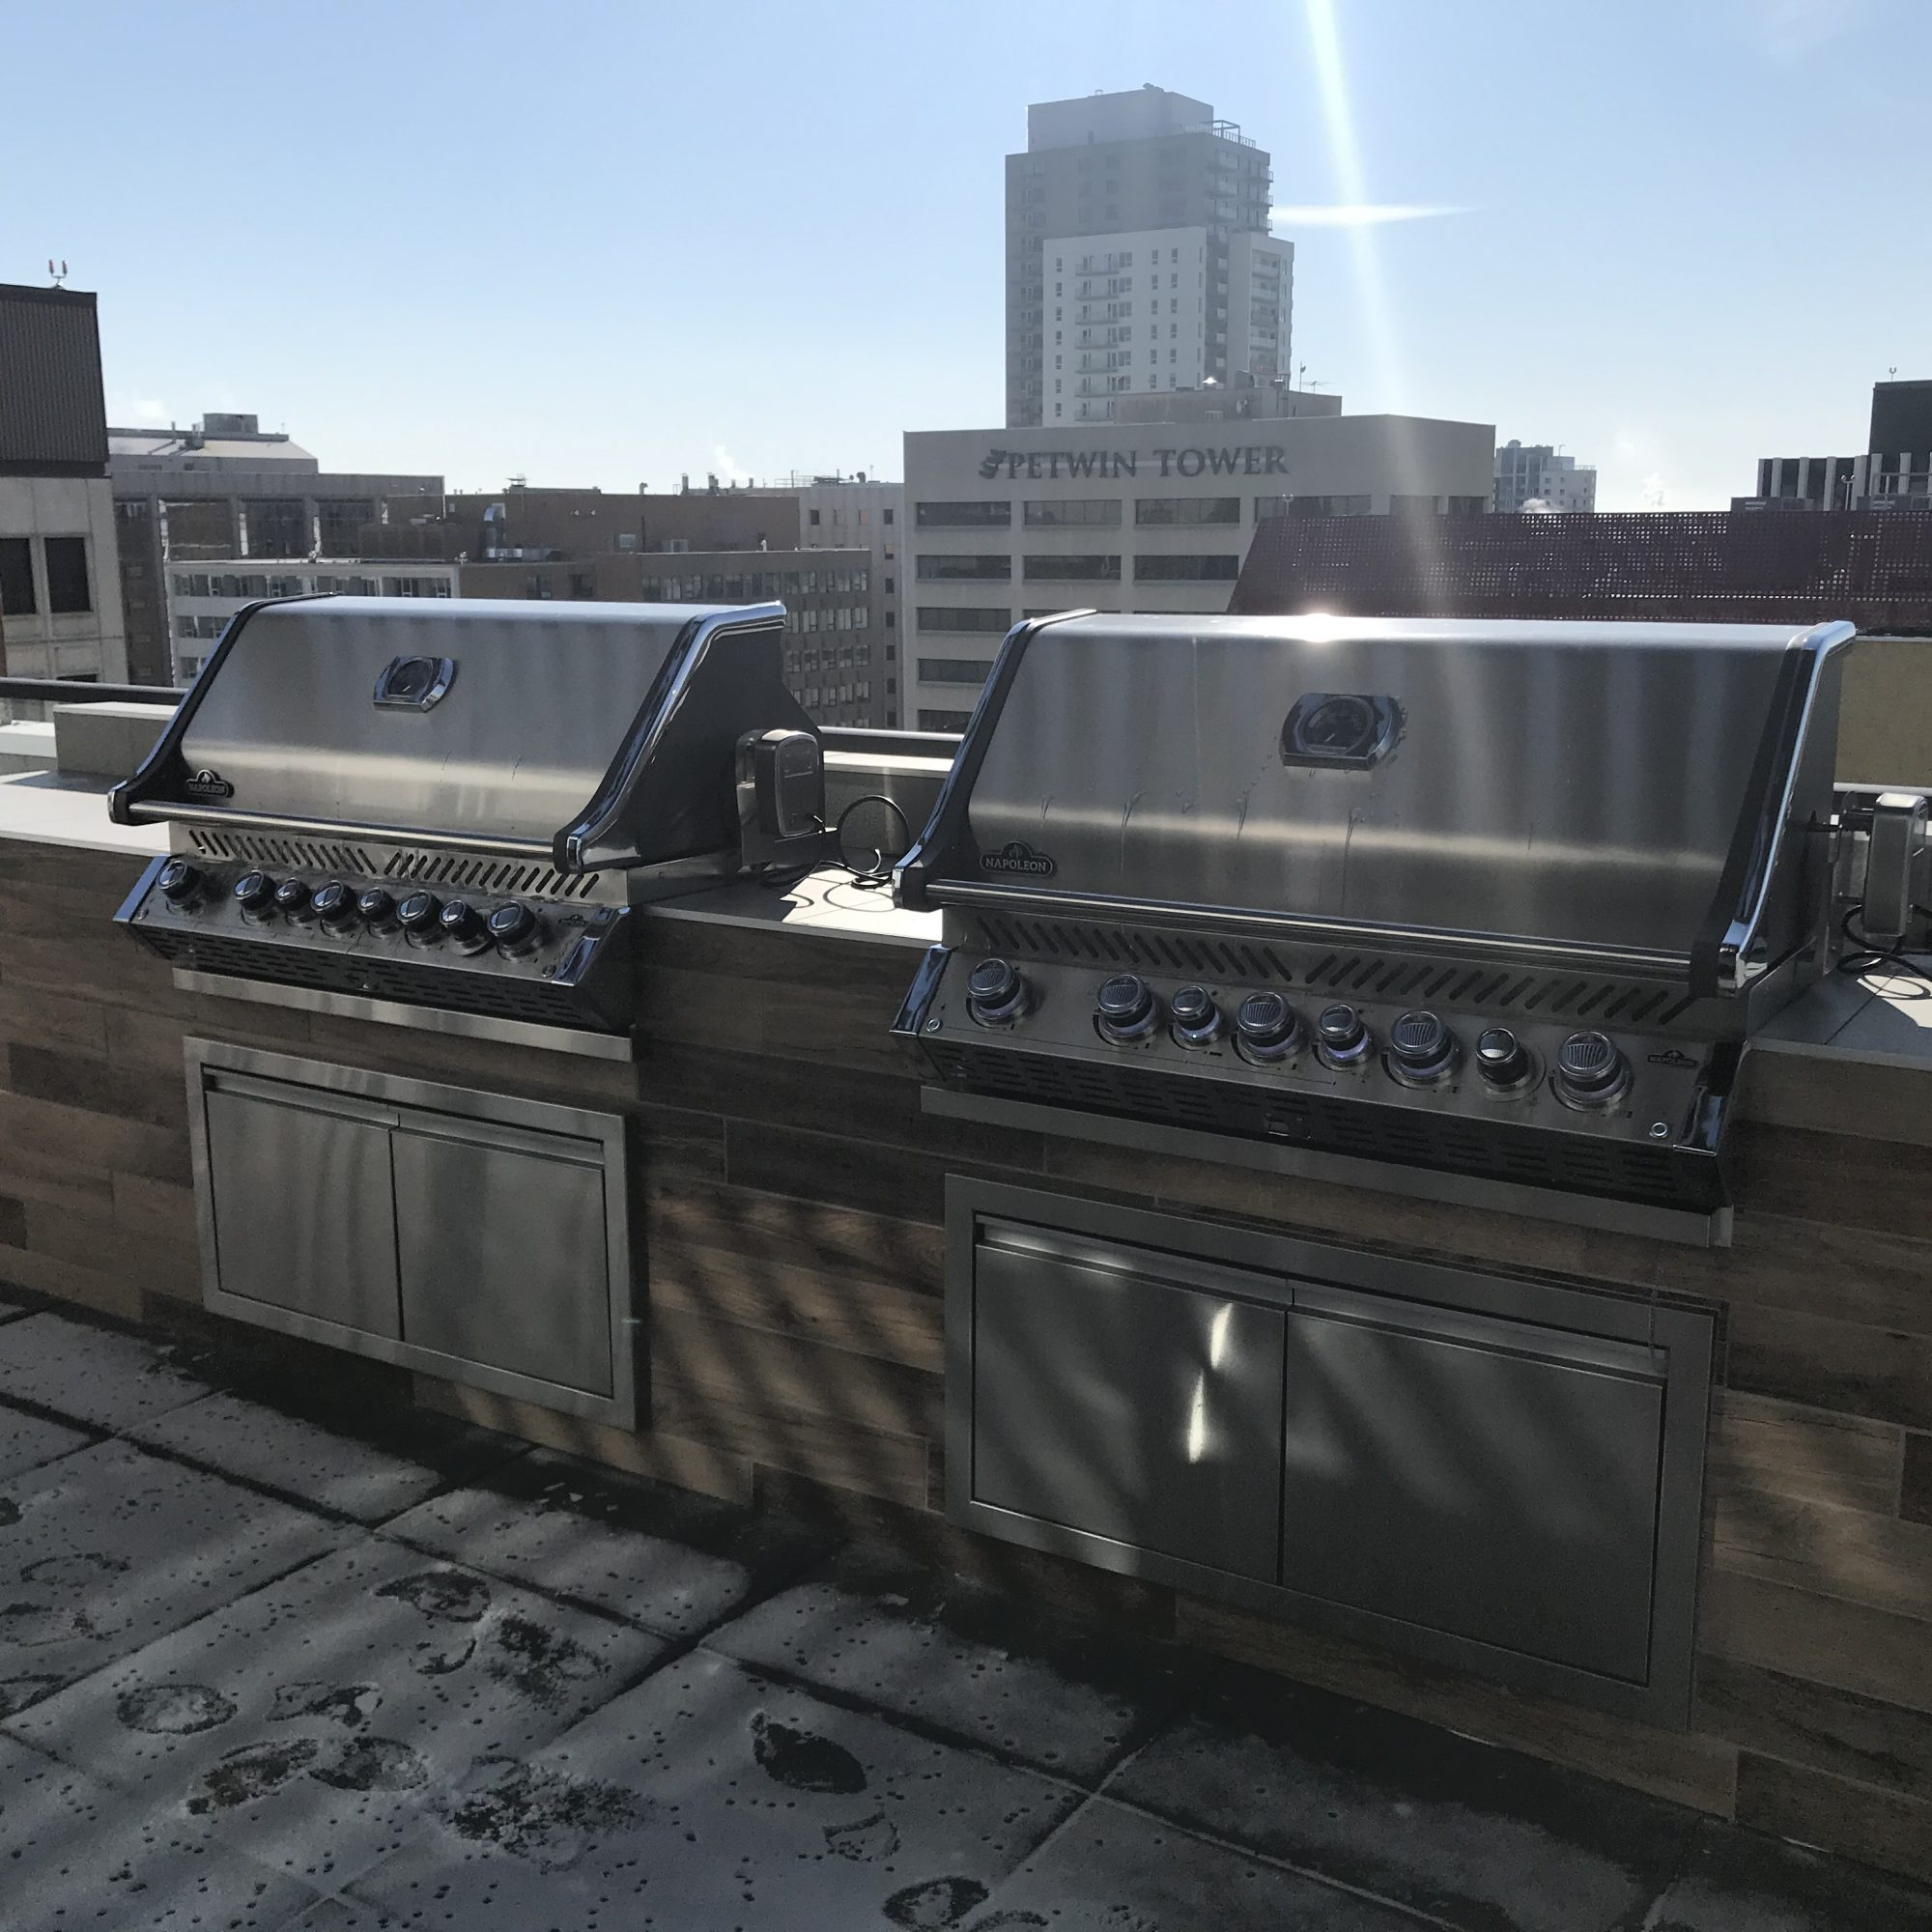 Rooftop grilling area